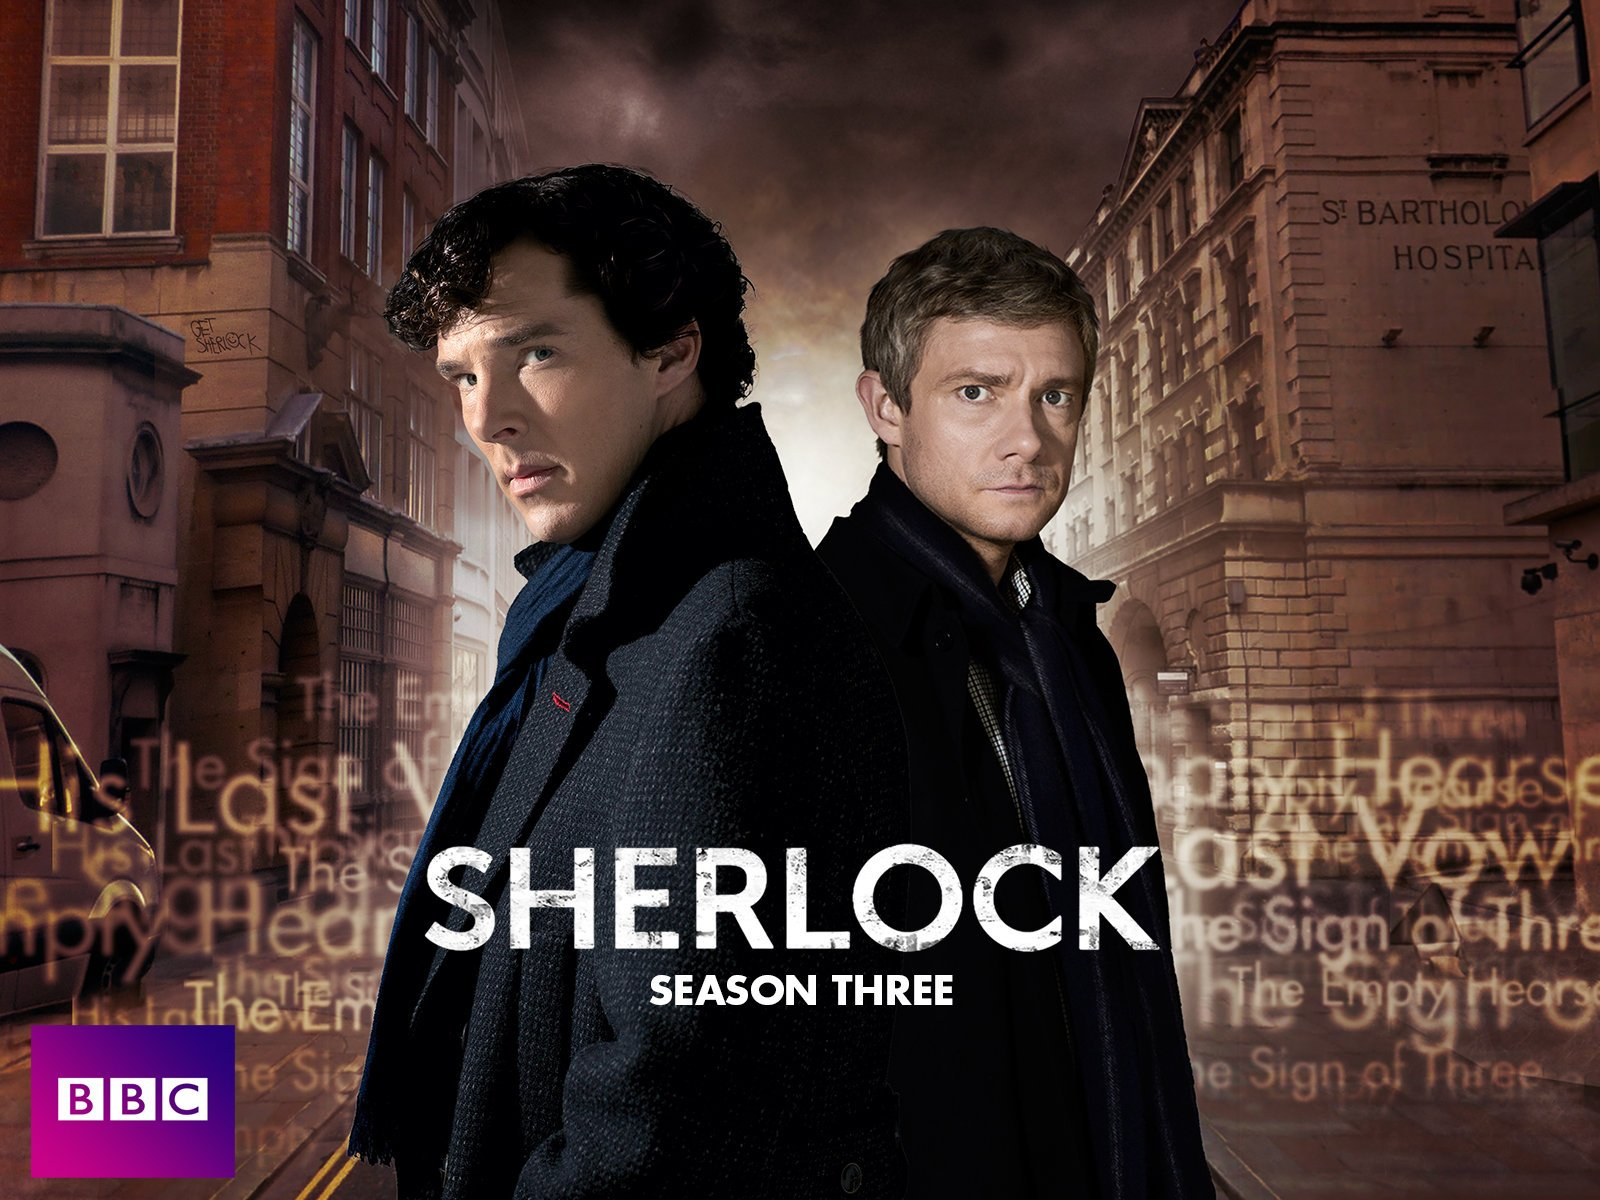 Sherlock (2010) Season 1-4 + The Abominal Bride (1080p BluRay x265